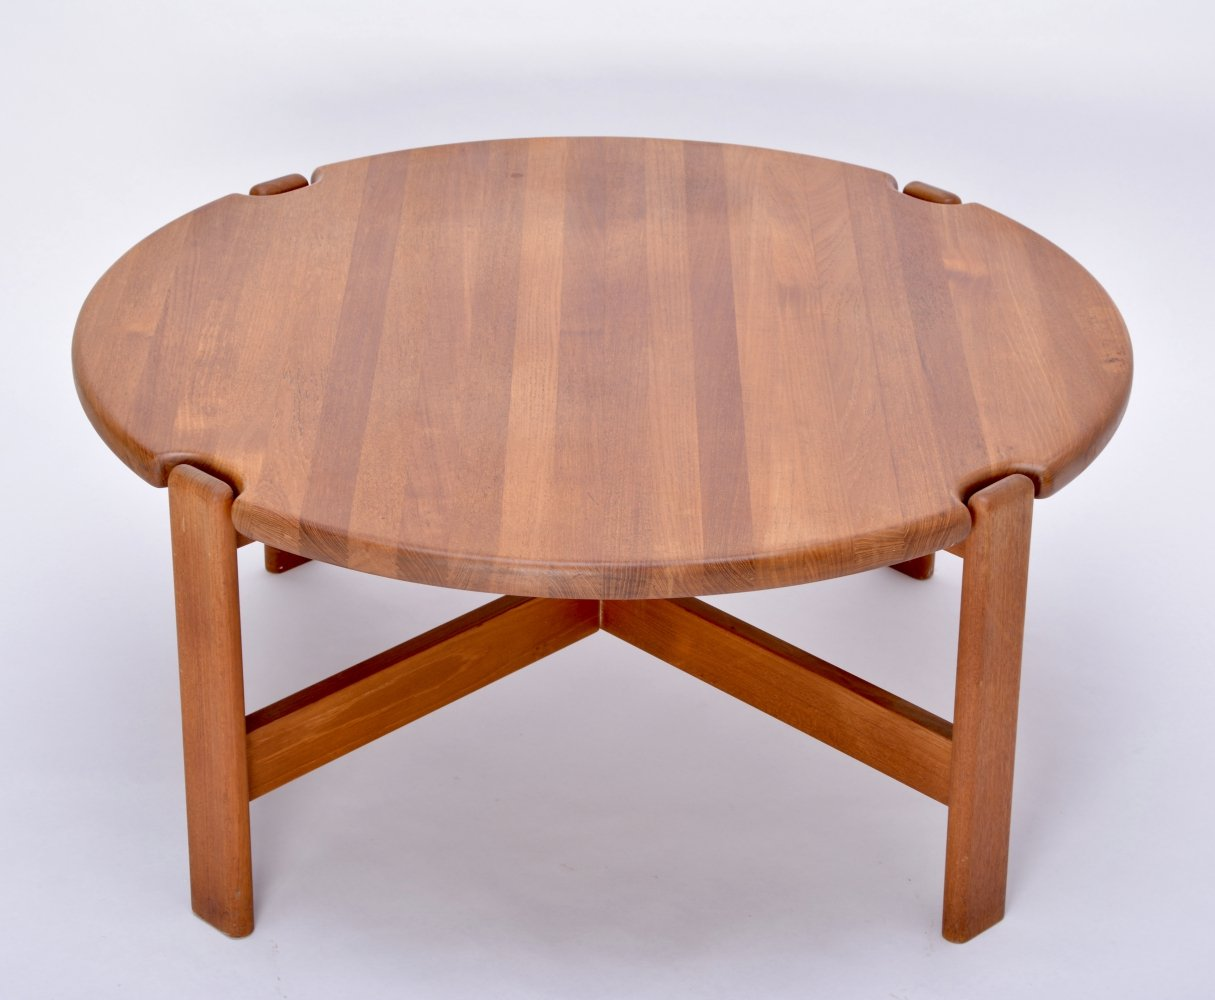 Circular Scandinavian Coffee Table from solid Teak